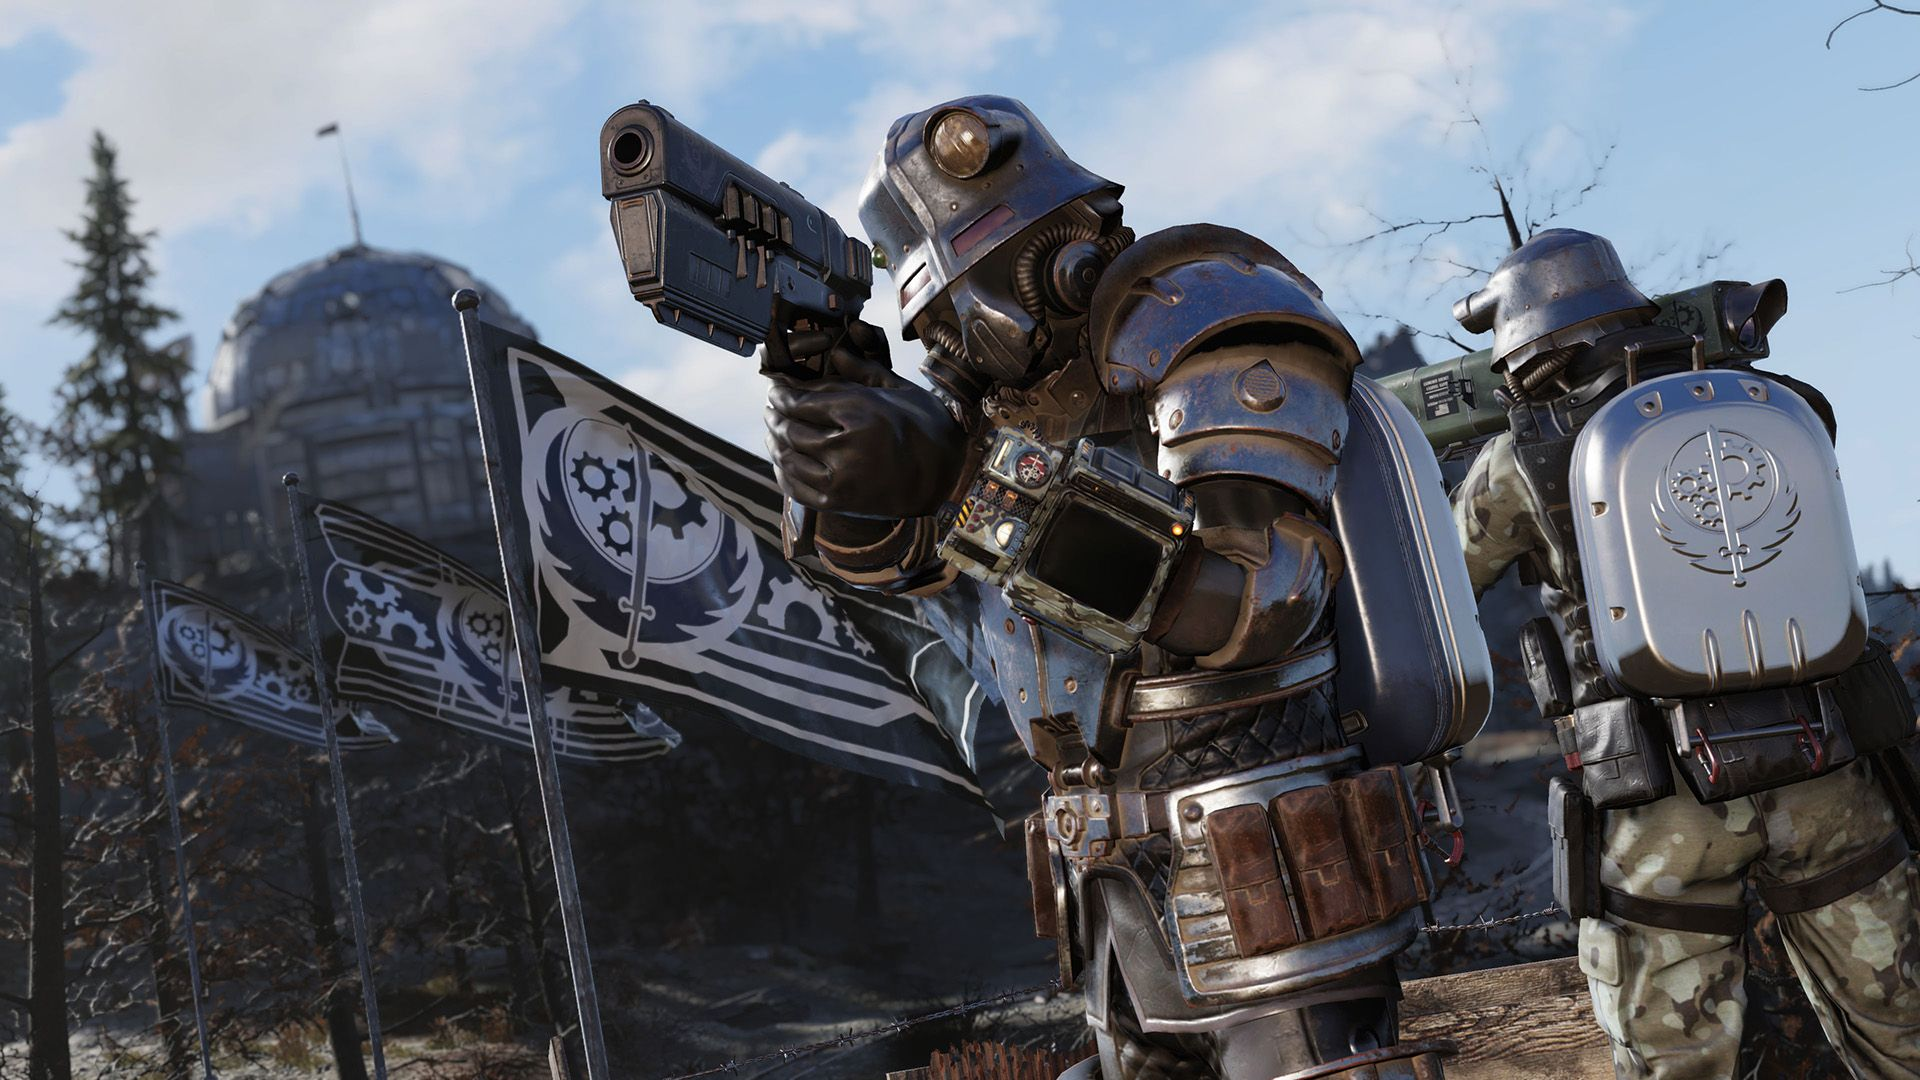 Fallout 76's battle royale game mode Nuclear Winter closes this September